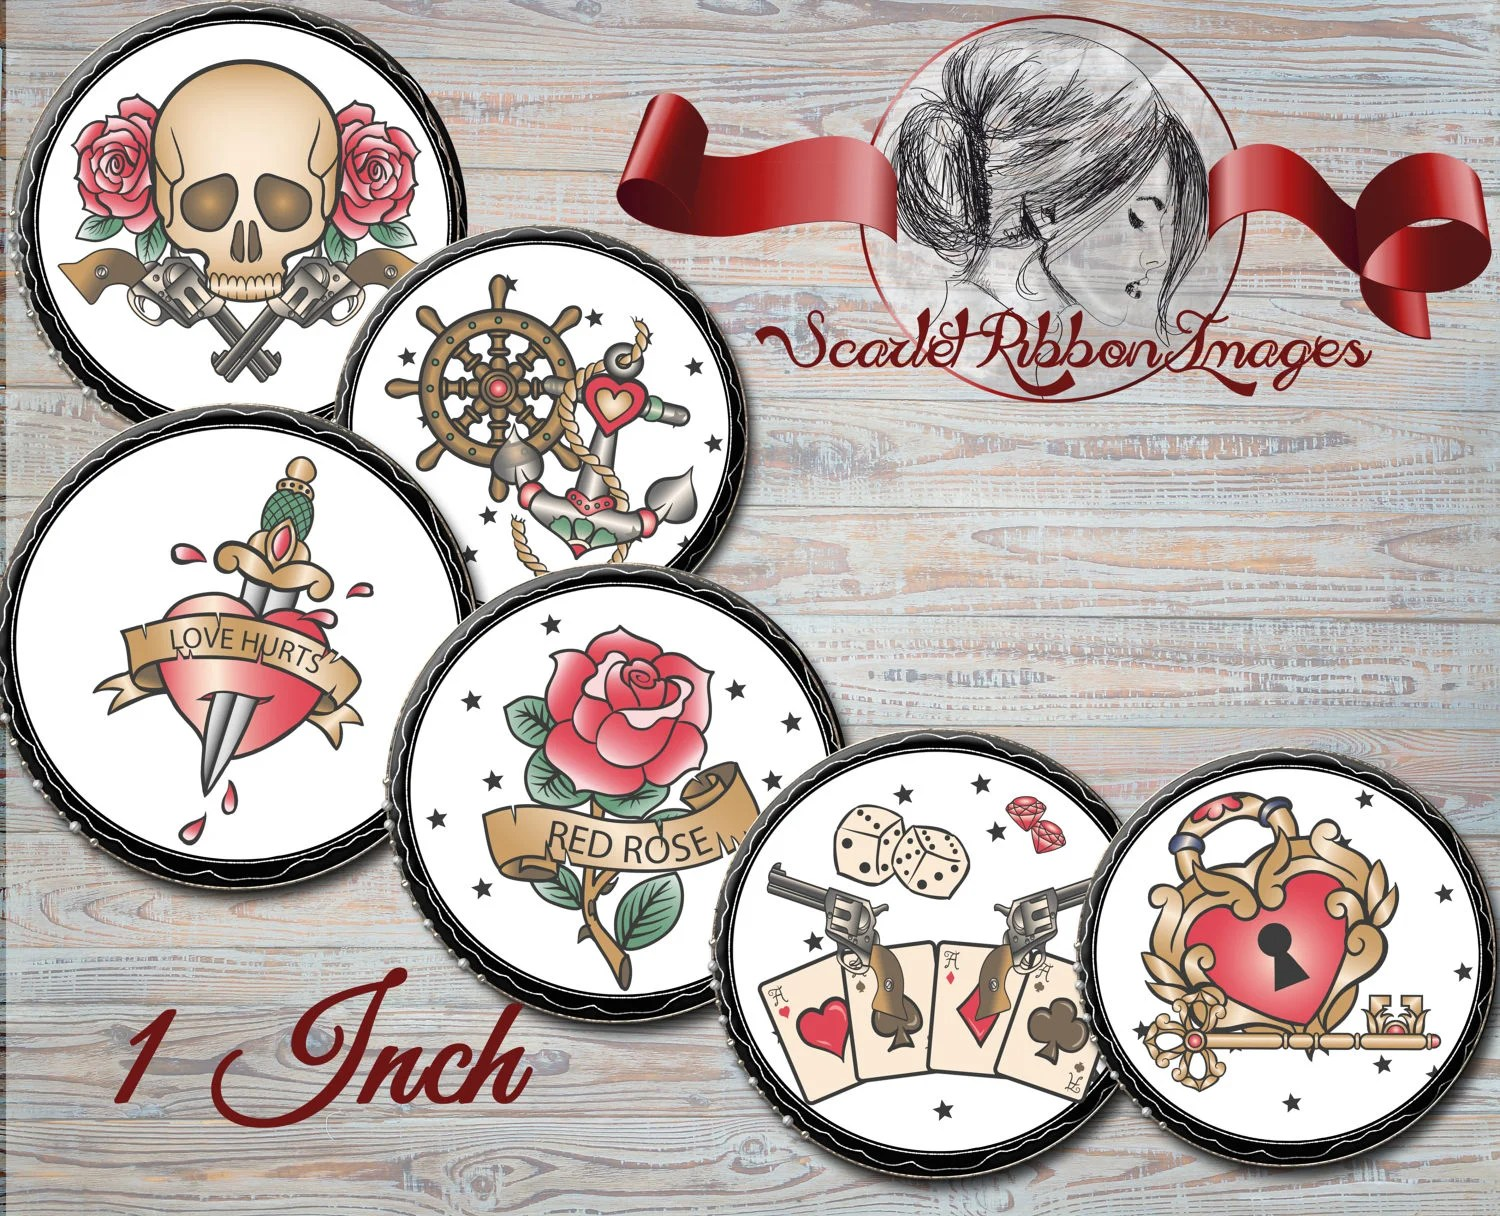 Tattoo Design Images Old School Tattoos Bottle Cap Size Ideas And Designs